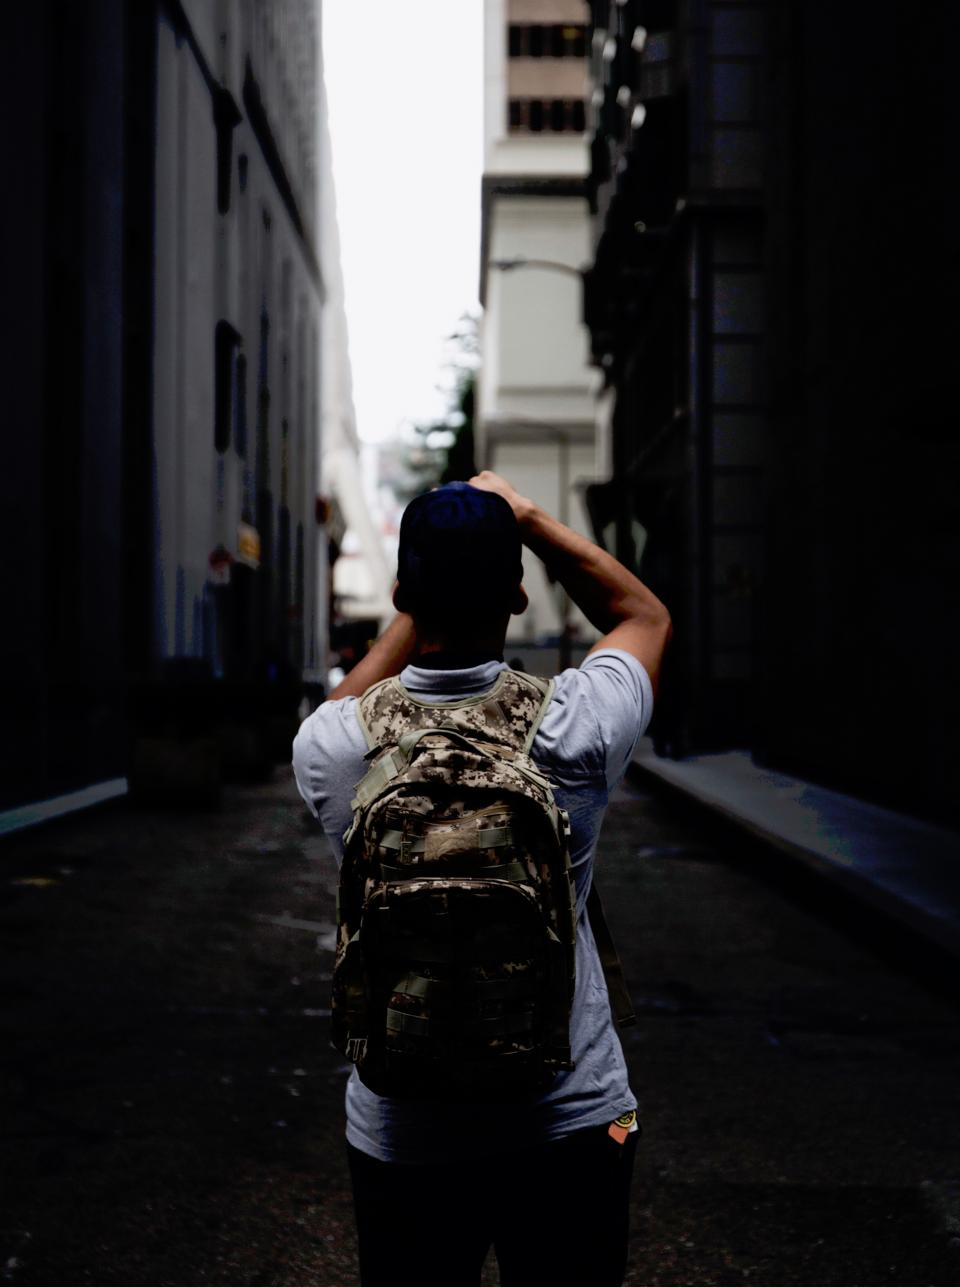 street alley people man guy photographer backpack